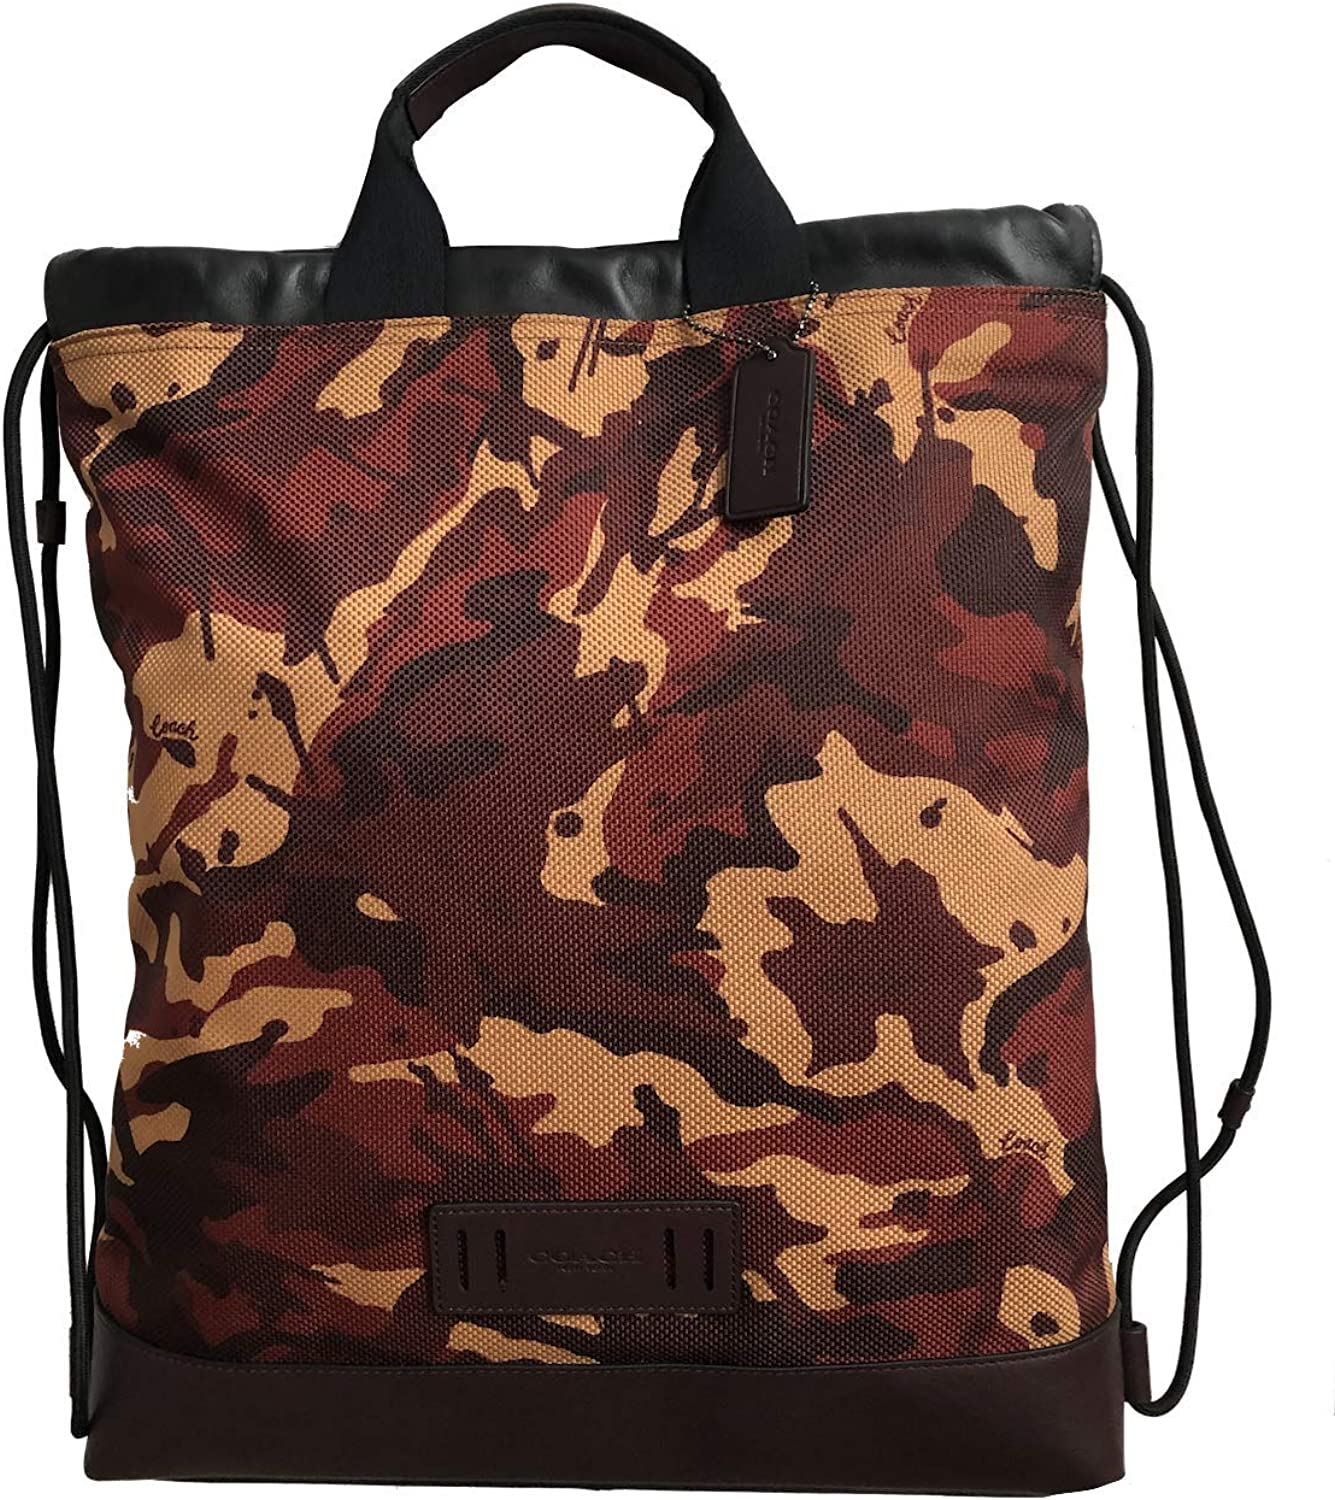 Image of Coach Men's Terrain Drawstring Slim Backpack Bag in QB Rust Camo, Style F76784. Drawstring Bags